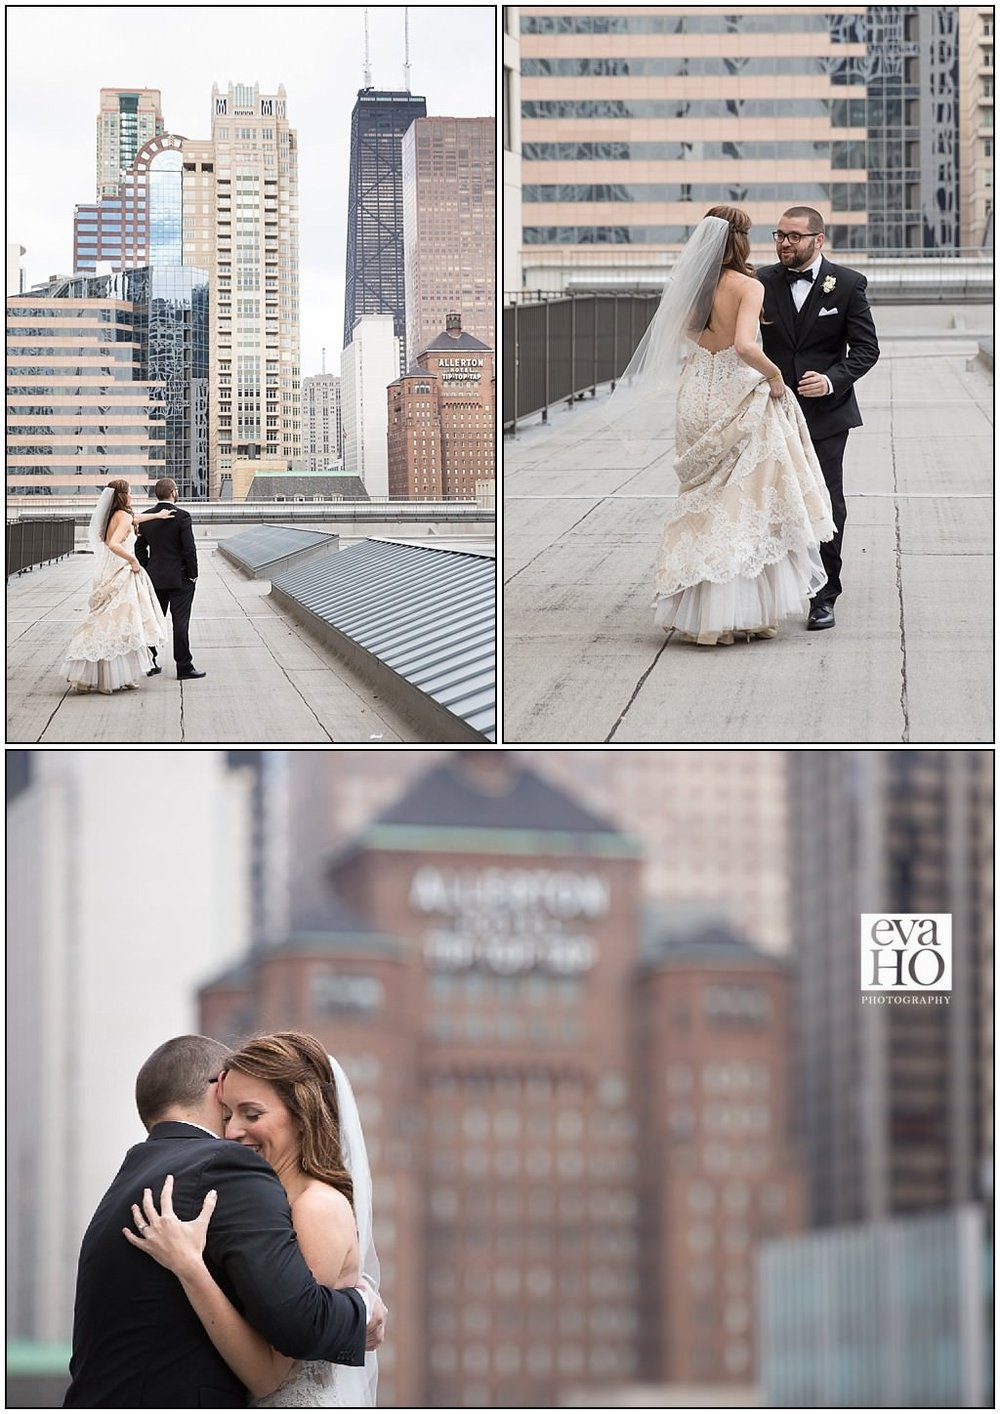 We were lucky enough to have the first look on the terrace of the Marriott. The city provided such a beautiful backdrop for for such a special moment.